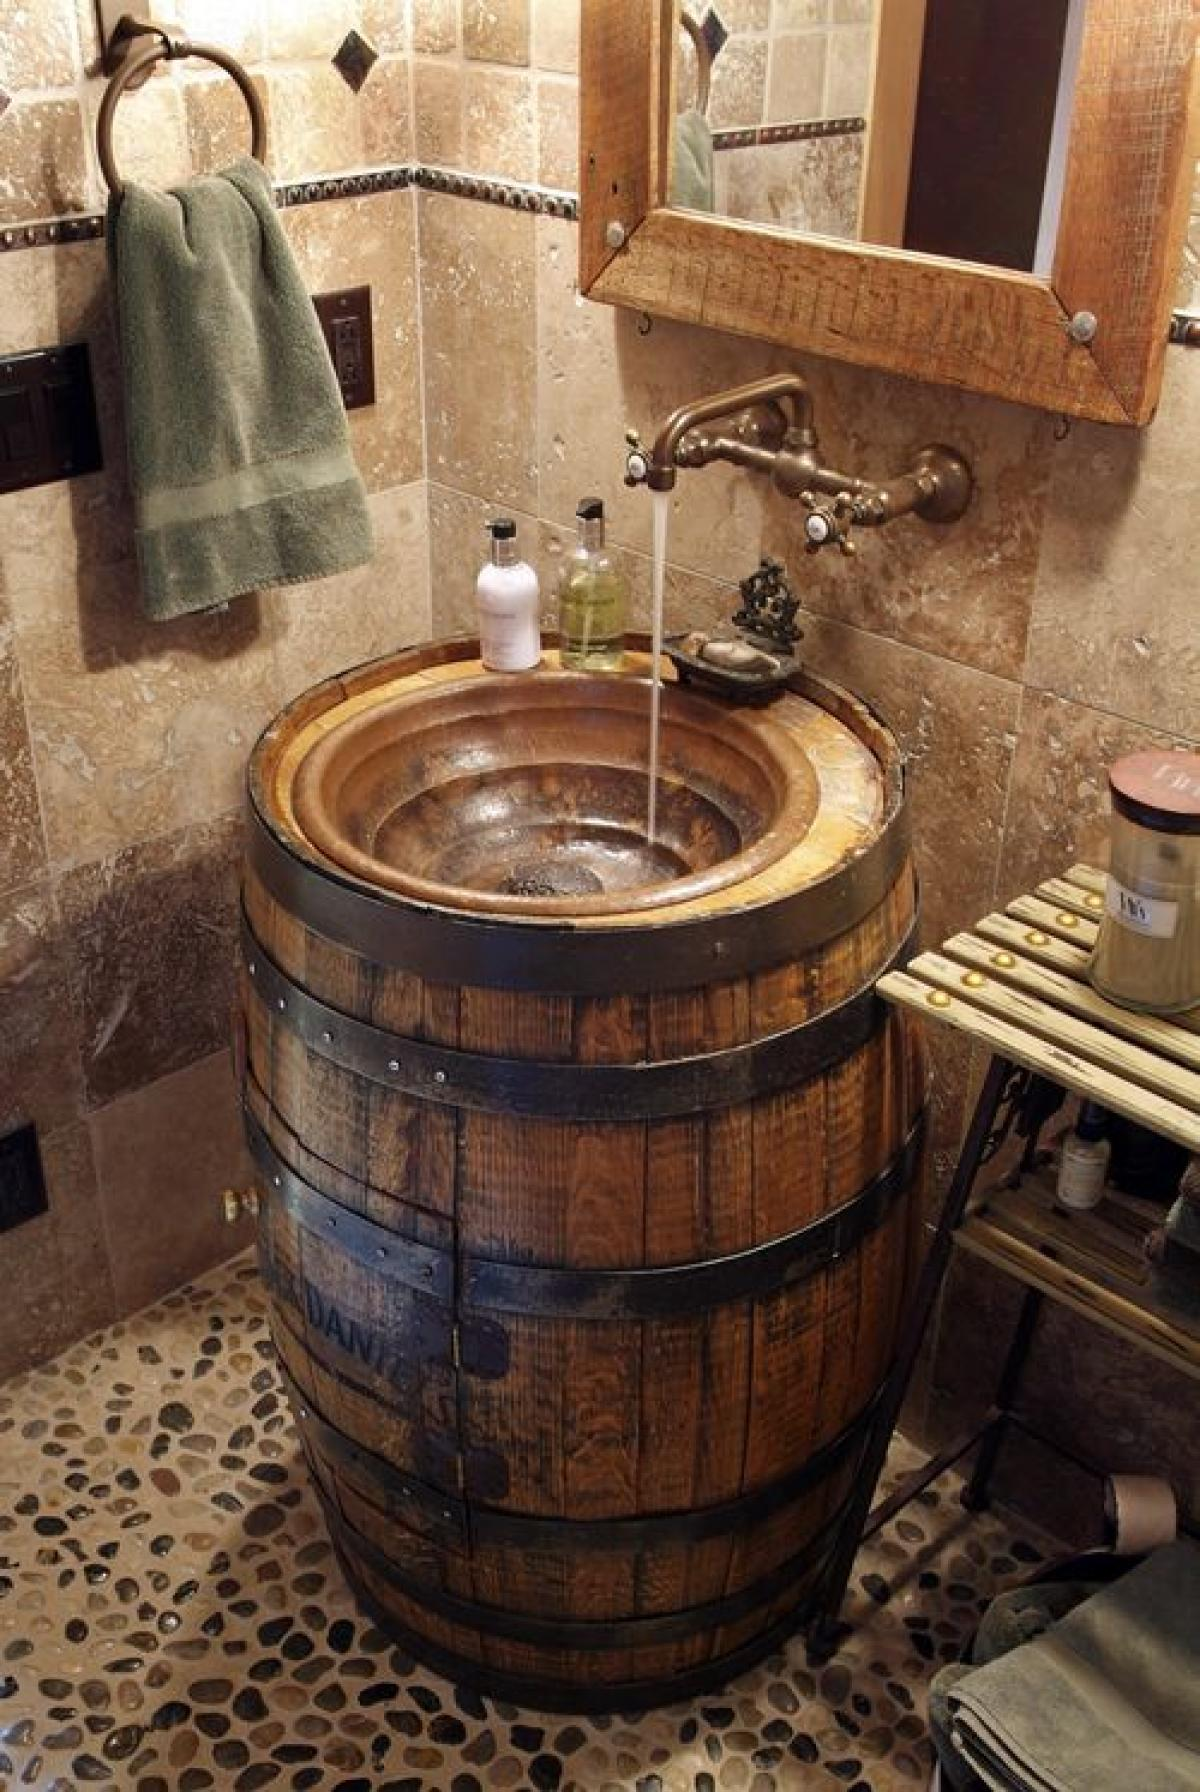 Rustic bathrooms designs - 12 Converted Whiskey Barrel Sink